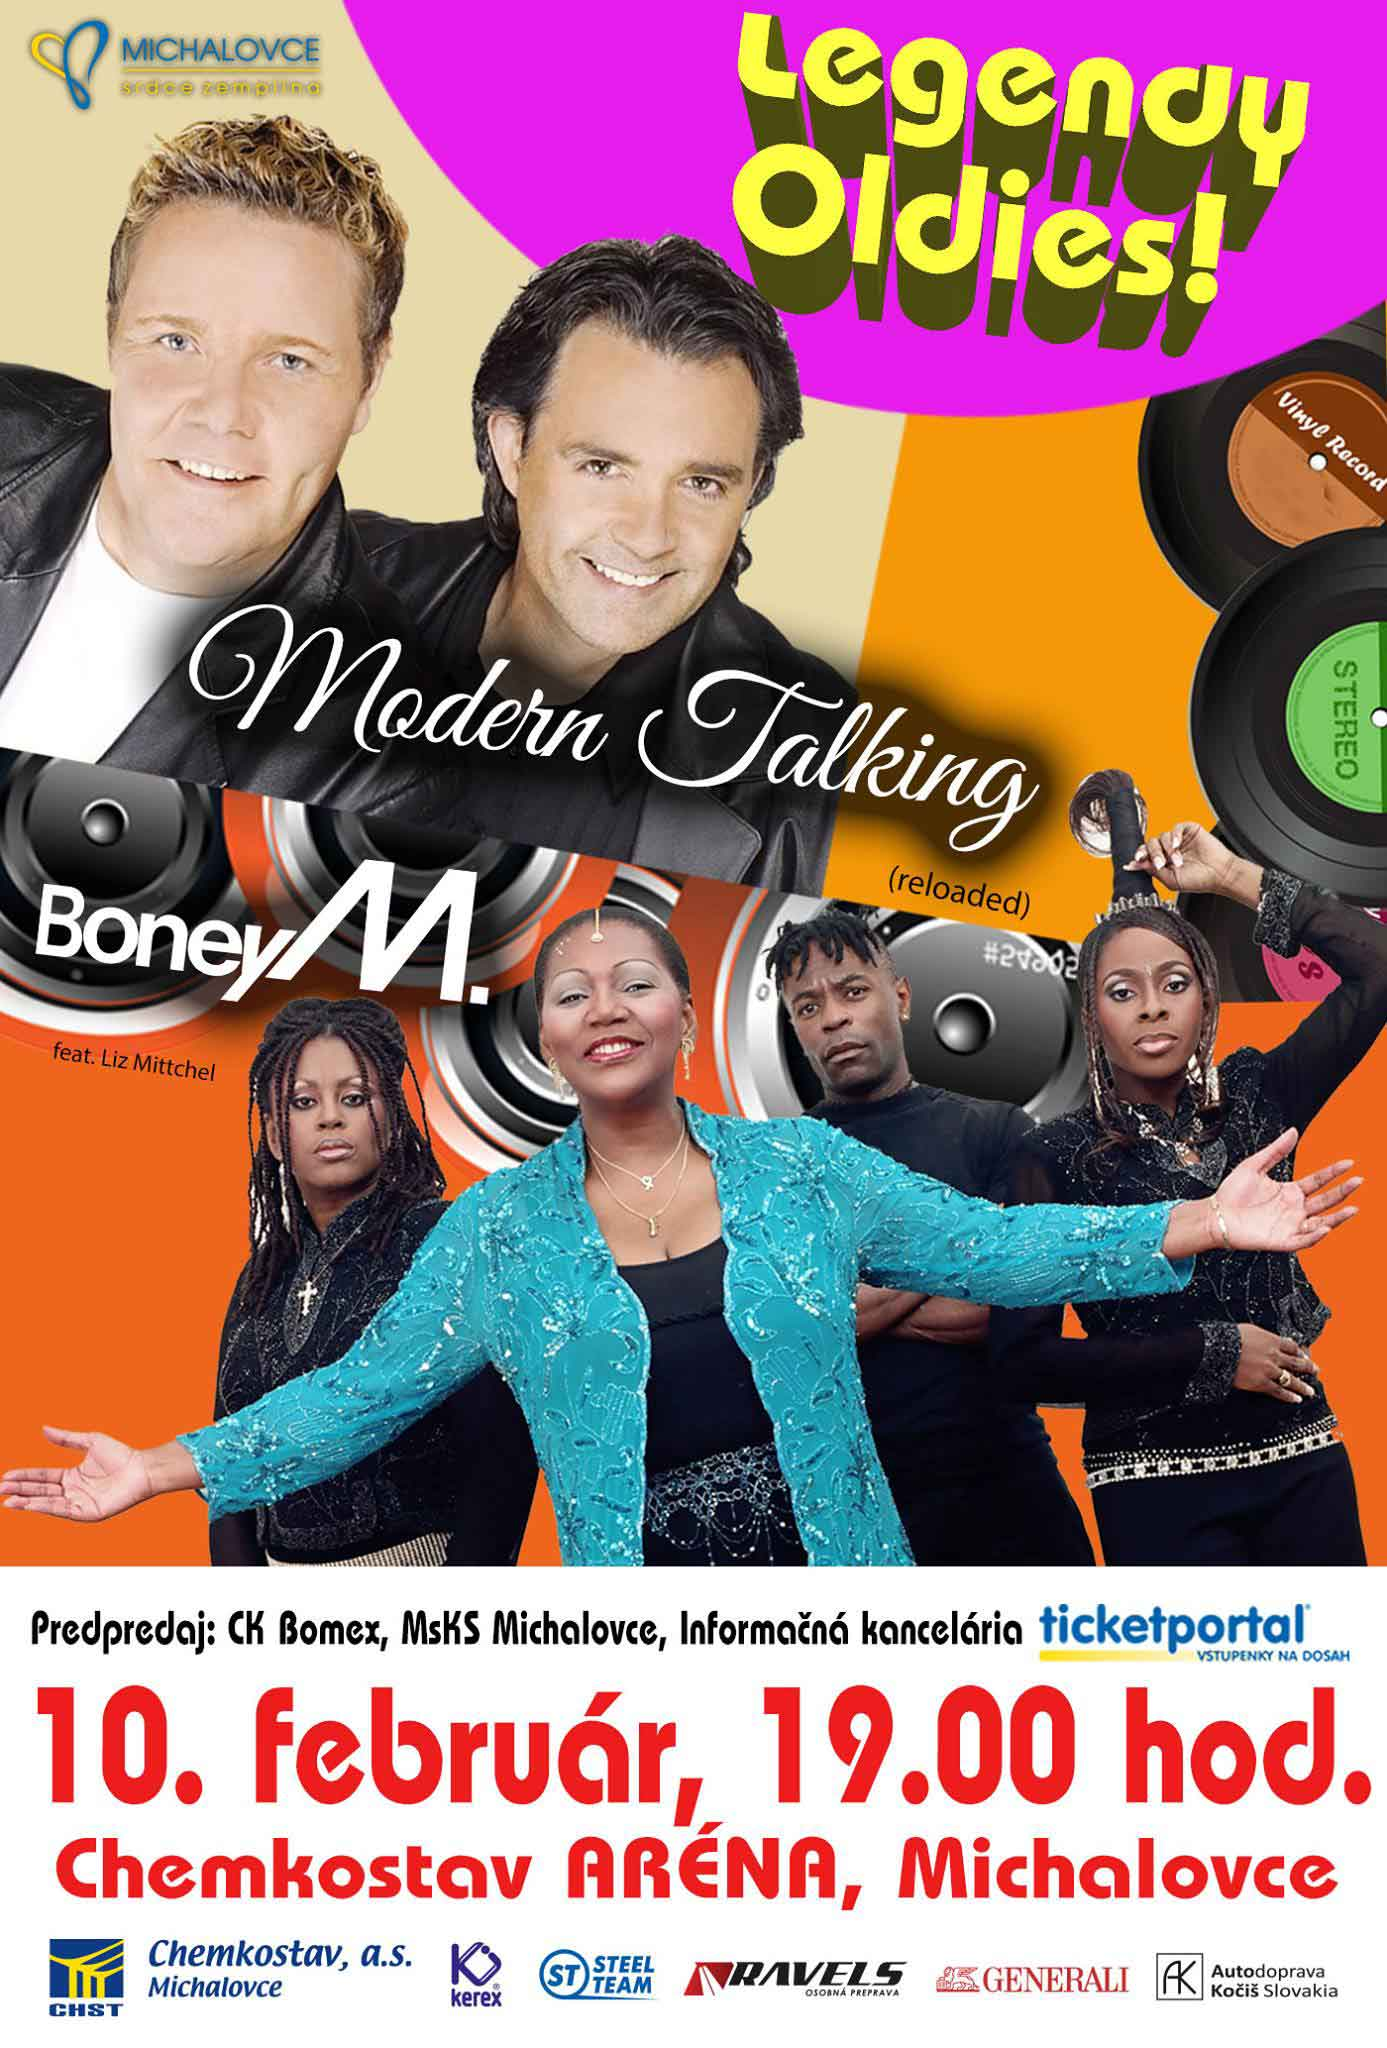 picture LEGENDY OLDIES Boney M a Modern Talking(reloaded)